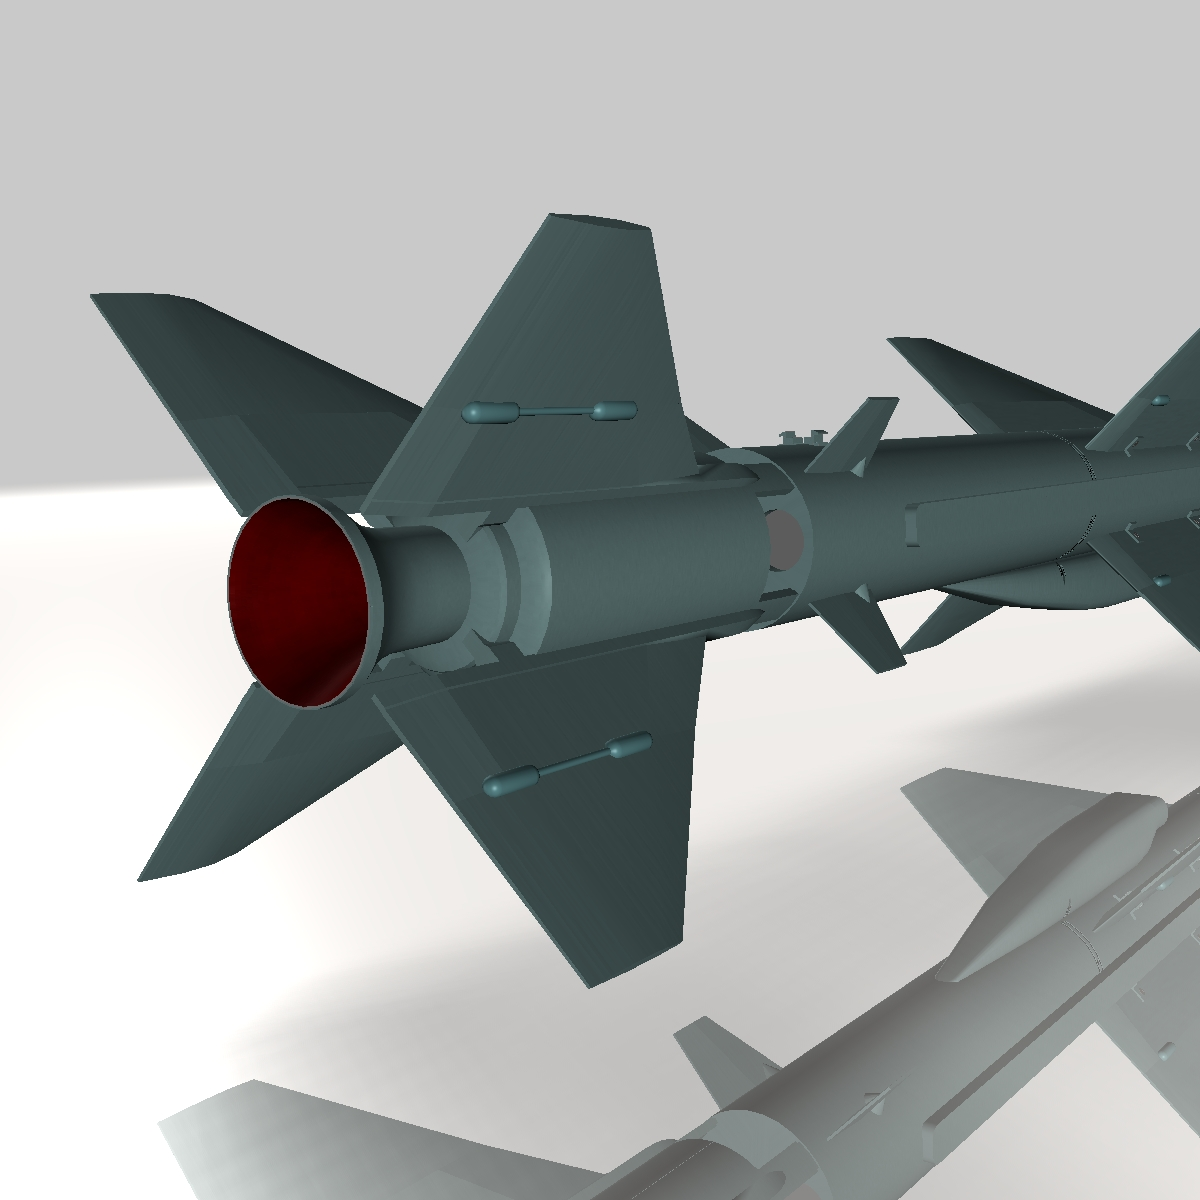 iranian qader cruise missile 3d model 3ds dxf x cod scn obj 149355